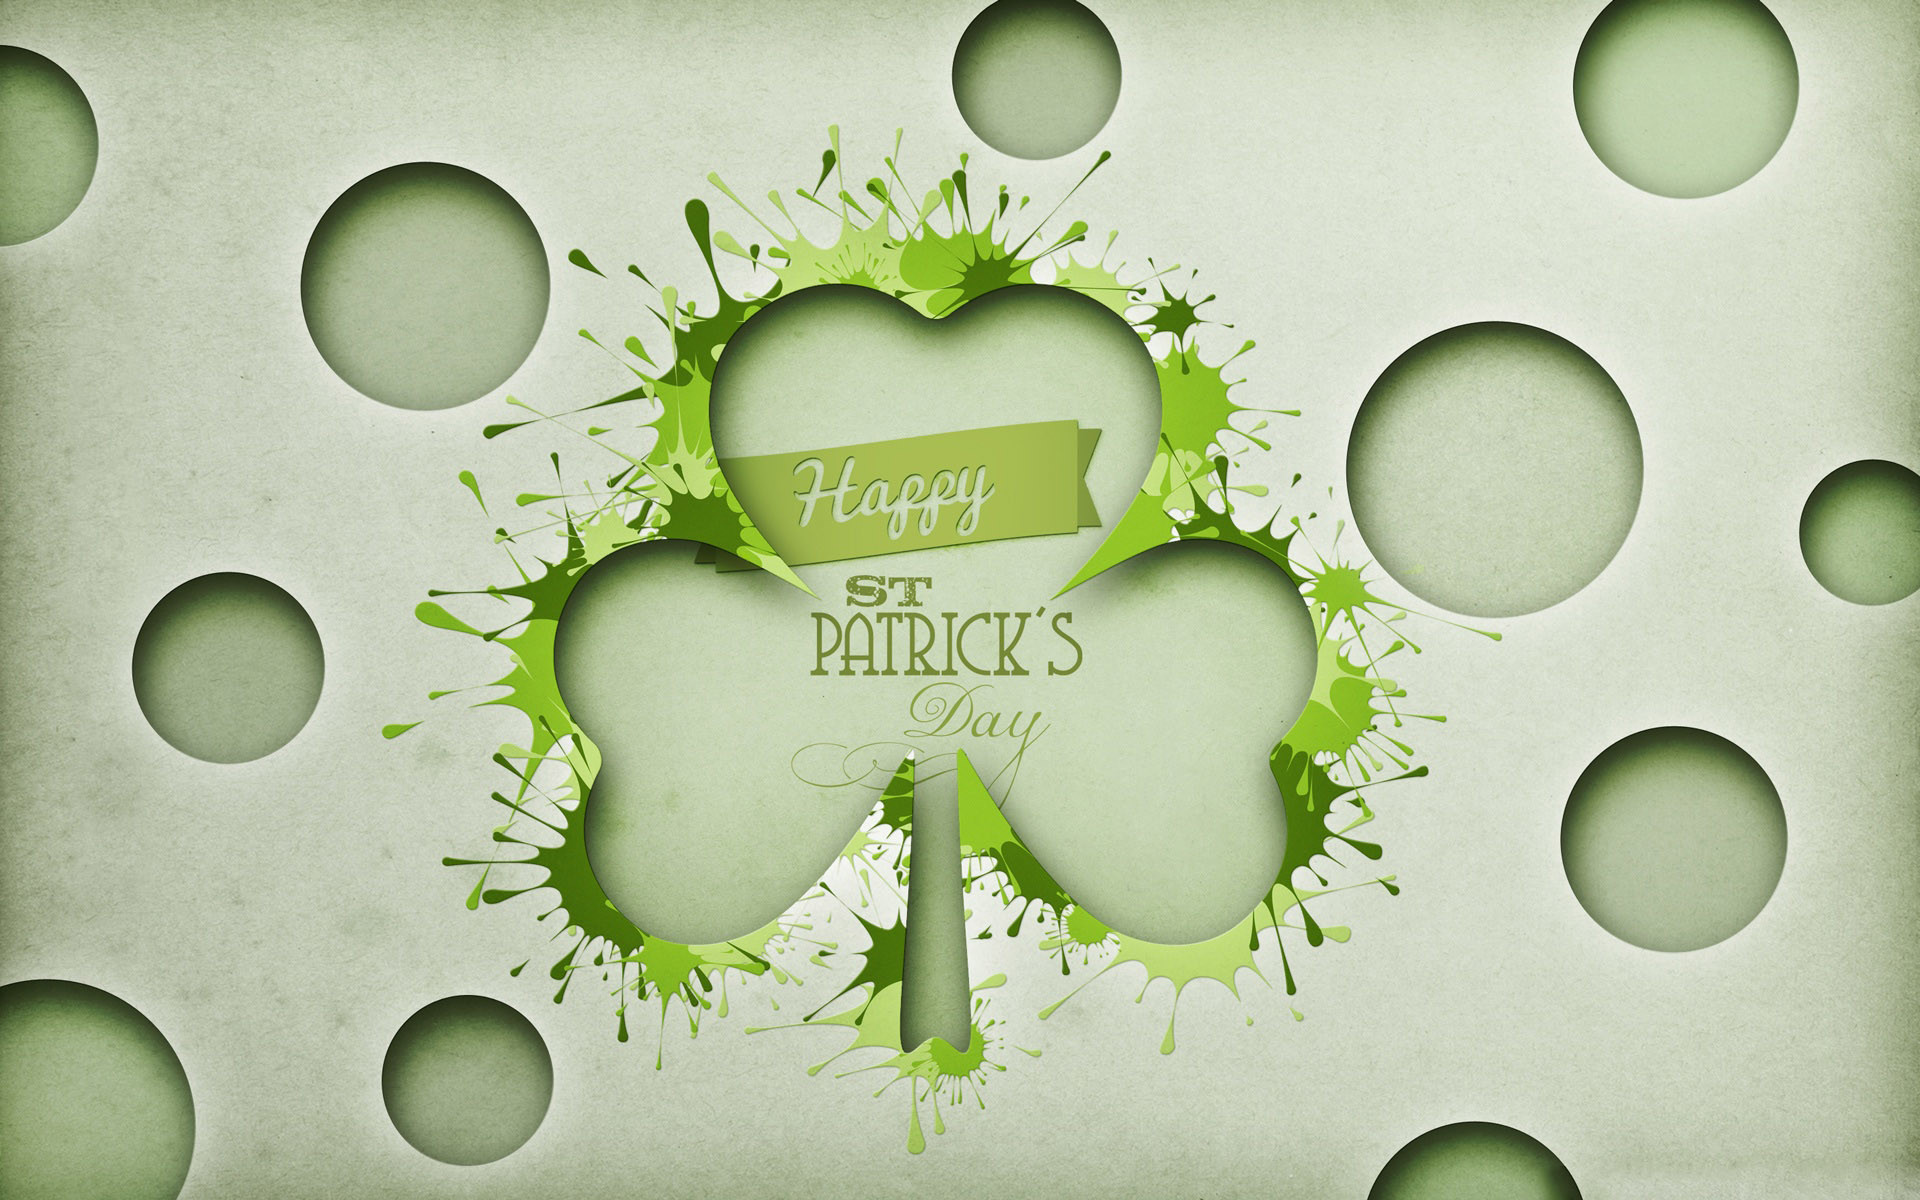 1920x1200 St Patrick's Day Wallpapers, Backgrounds for My PC, Desktop, Laptop, Mobile